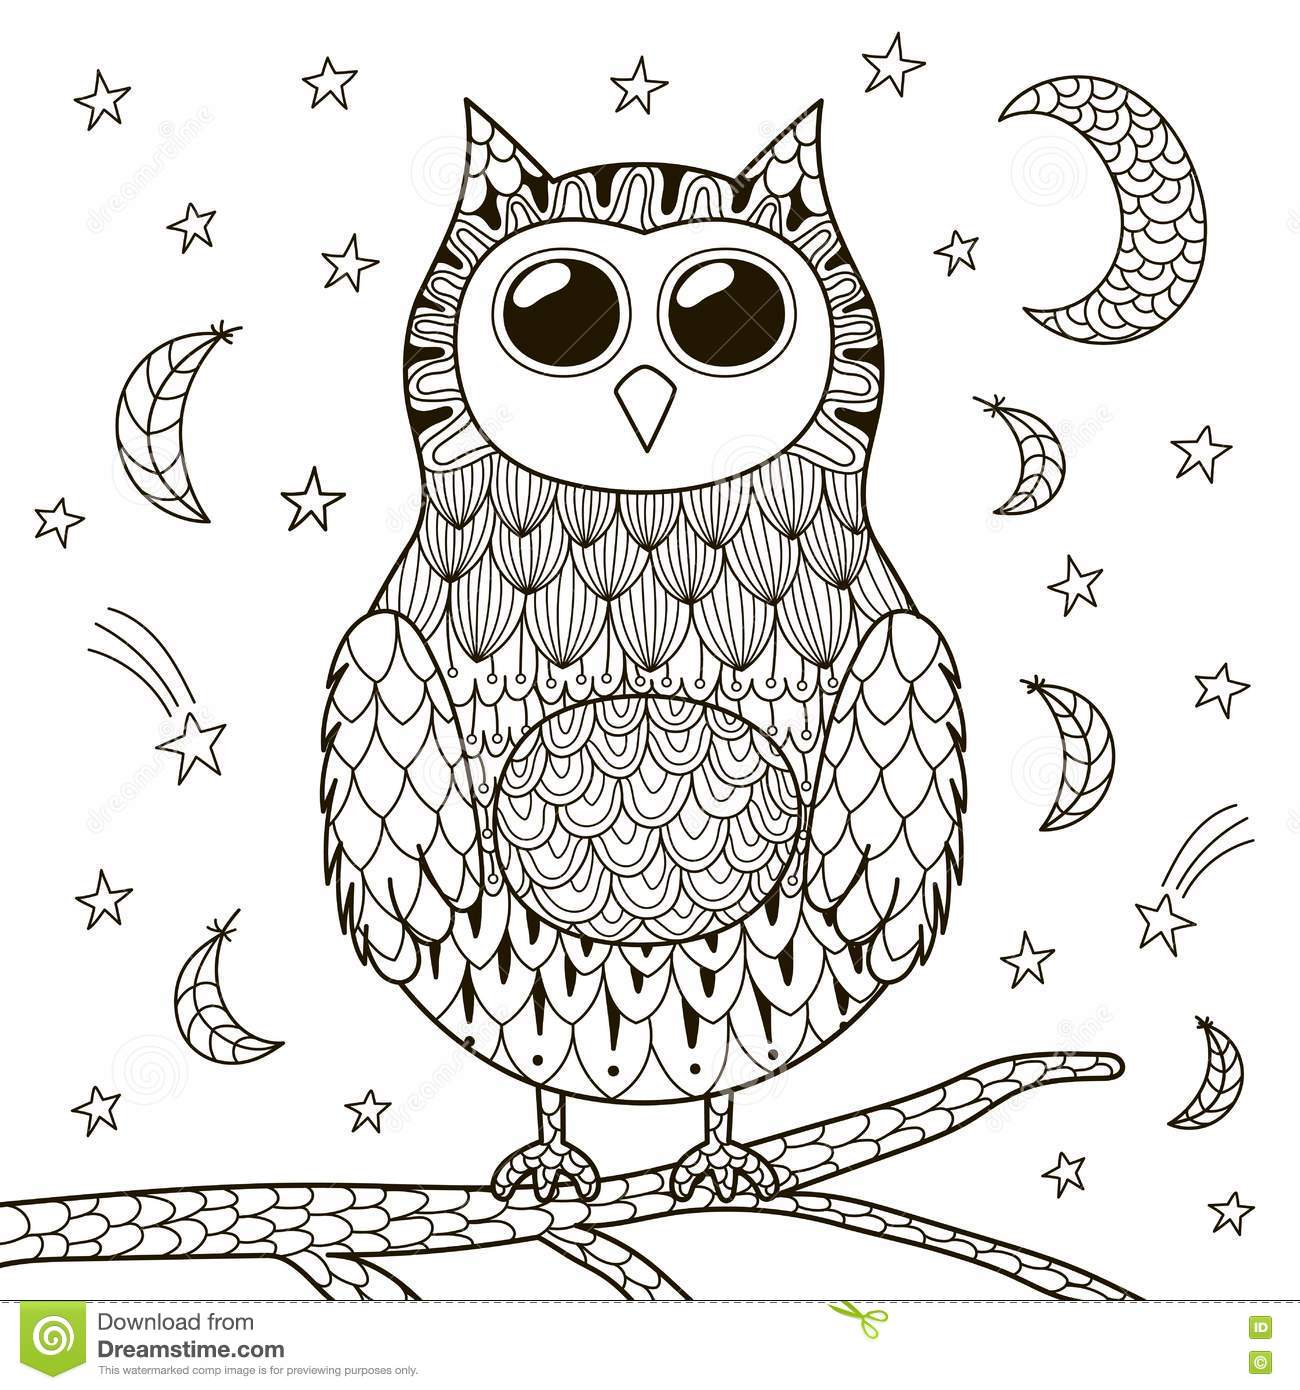 hibou mignon de zentangle la nuit pour livre de coloriage illustration de vecteur illustration. Black Bedroom Furniture Sets. Home Design Ideas